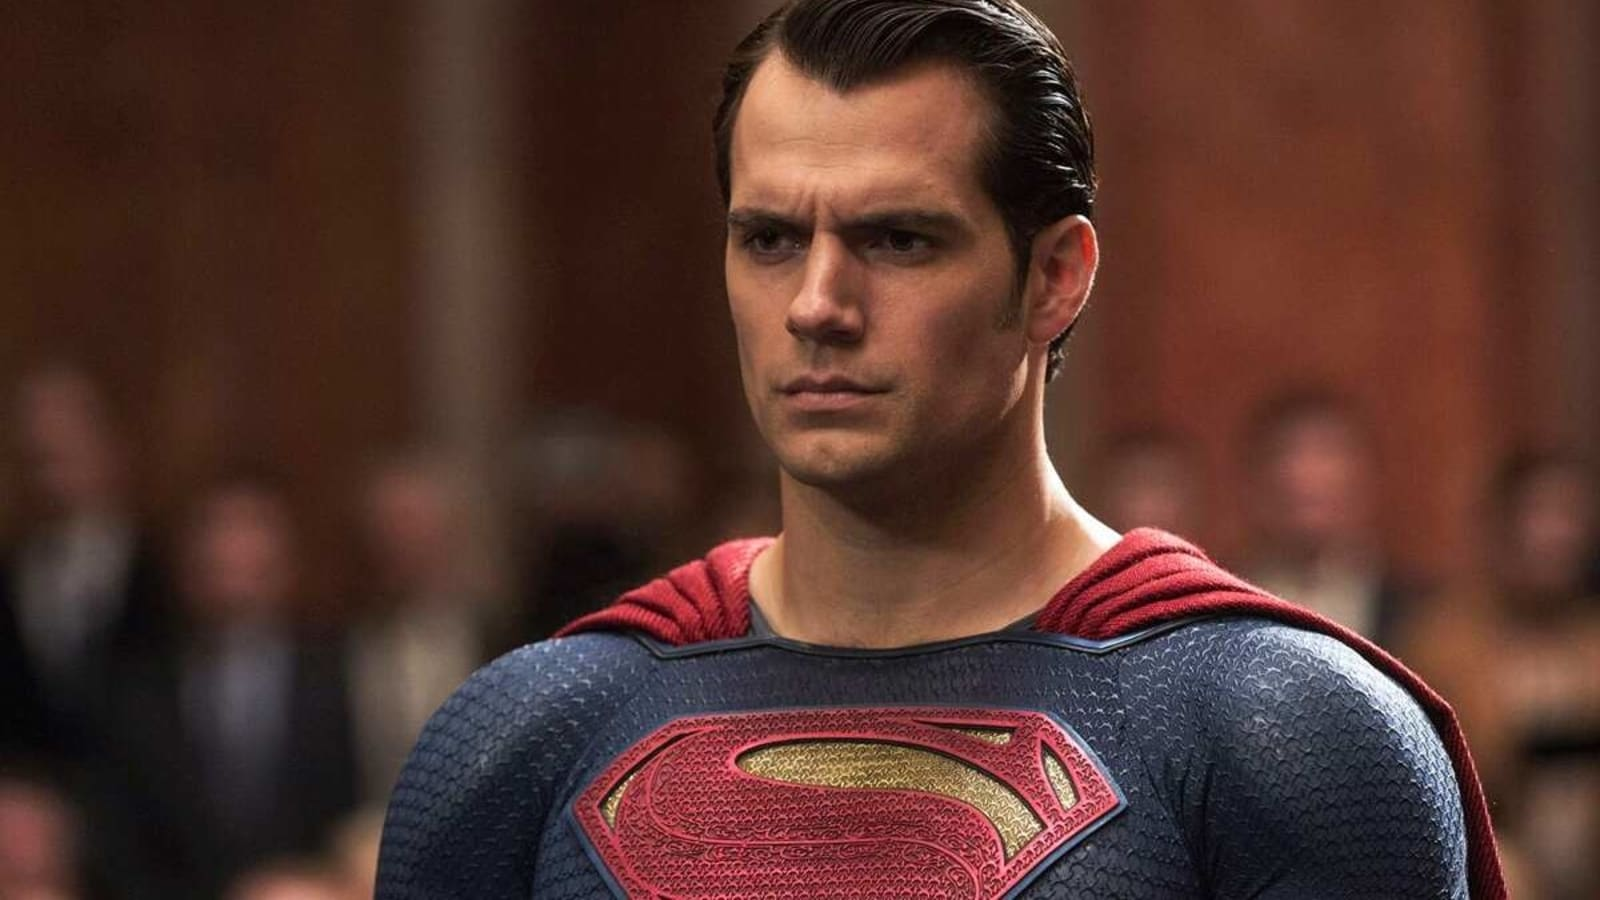 Henry Cavill to star in fantasy drama Highlander reboot: 'An opportunity  like no other' | Hollywood - Hindustan Times